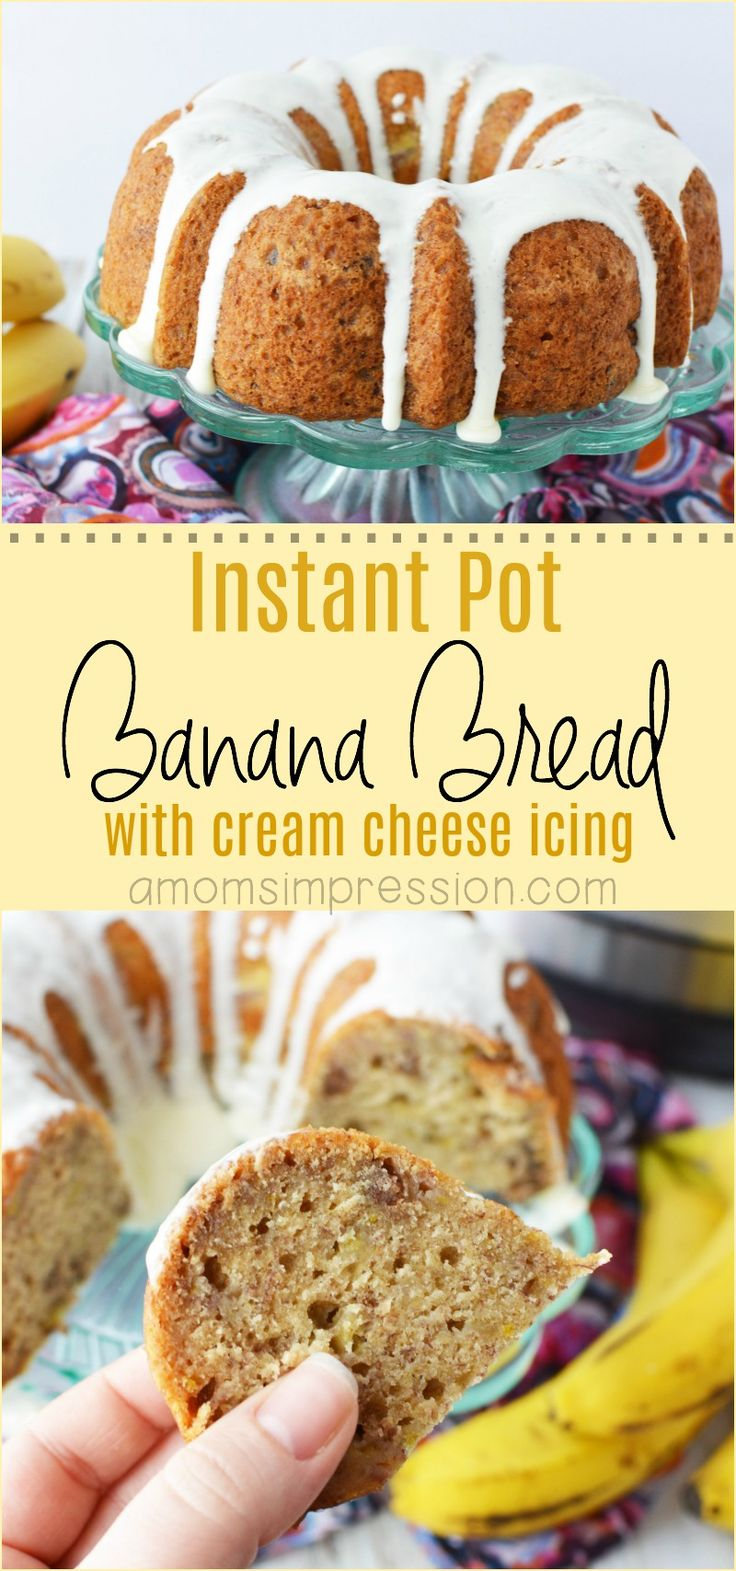 Did you know that your pressure cooker can make a super moist banana  bread? Check out this easy Instant Pot Banana Bread recipe, it is the  best dessert I have made in awhile! #Instantpot #bananabread #dessert